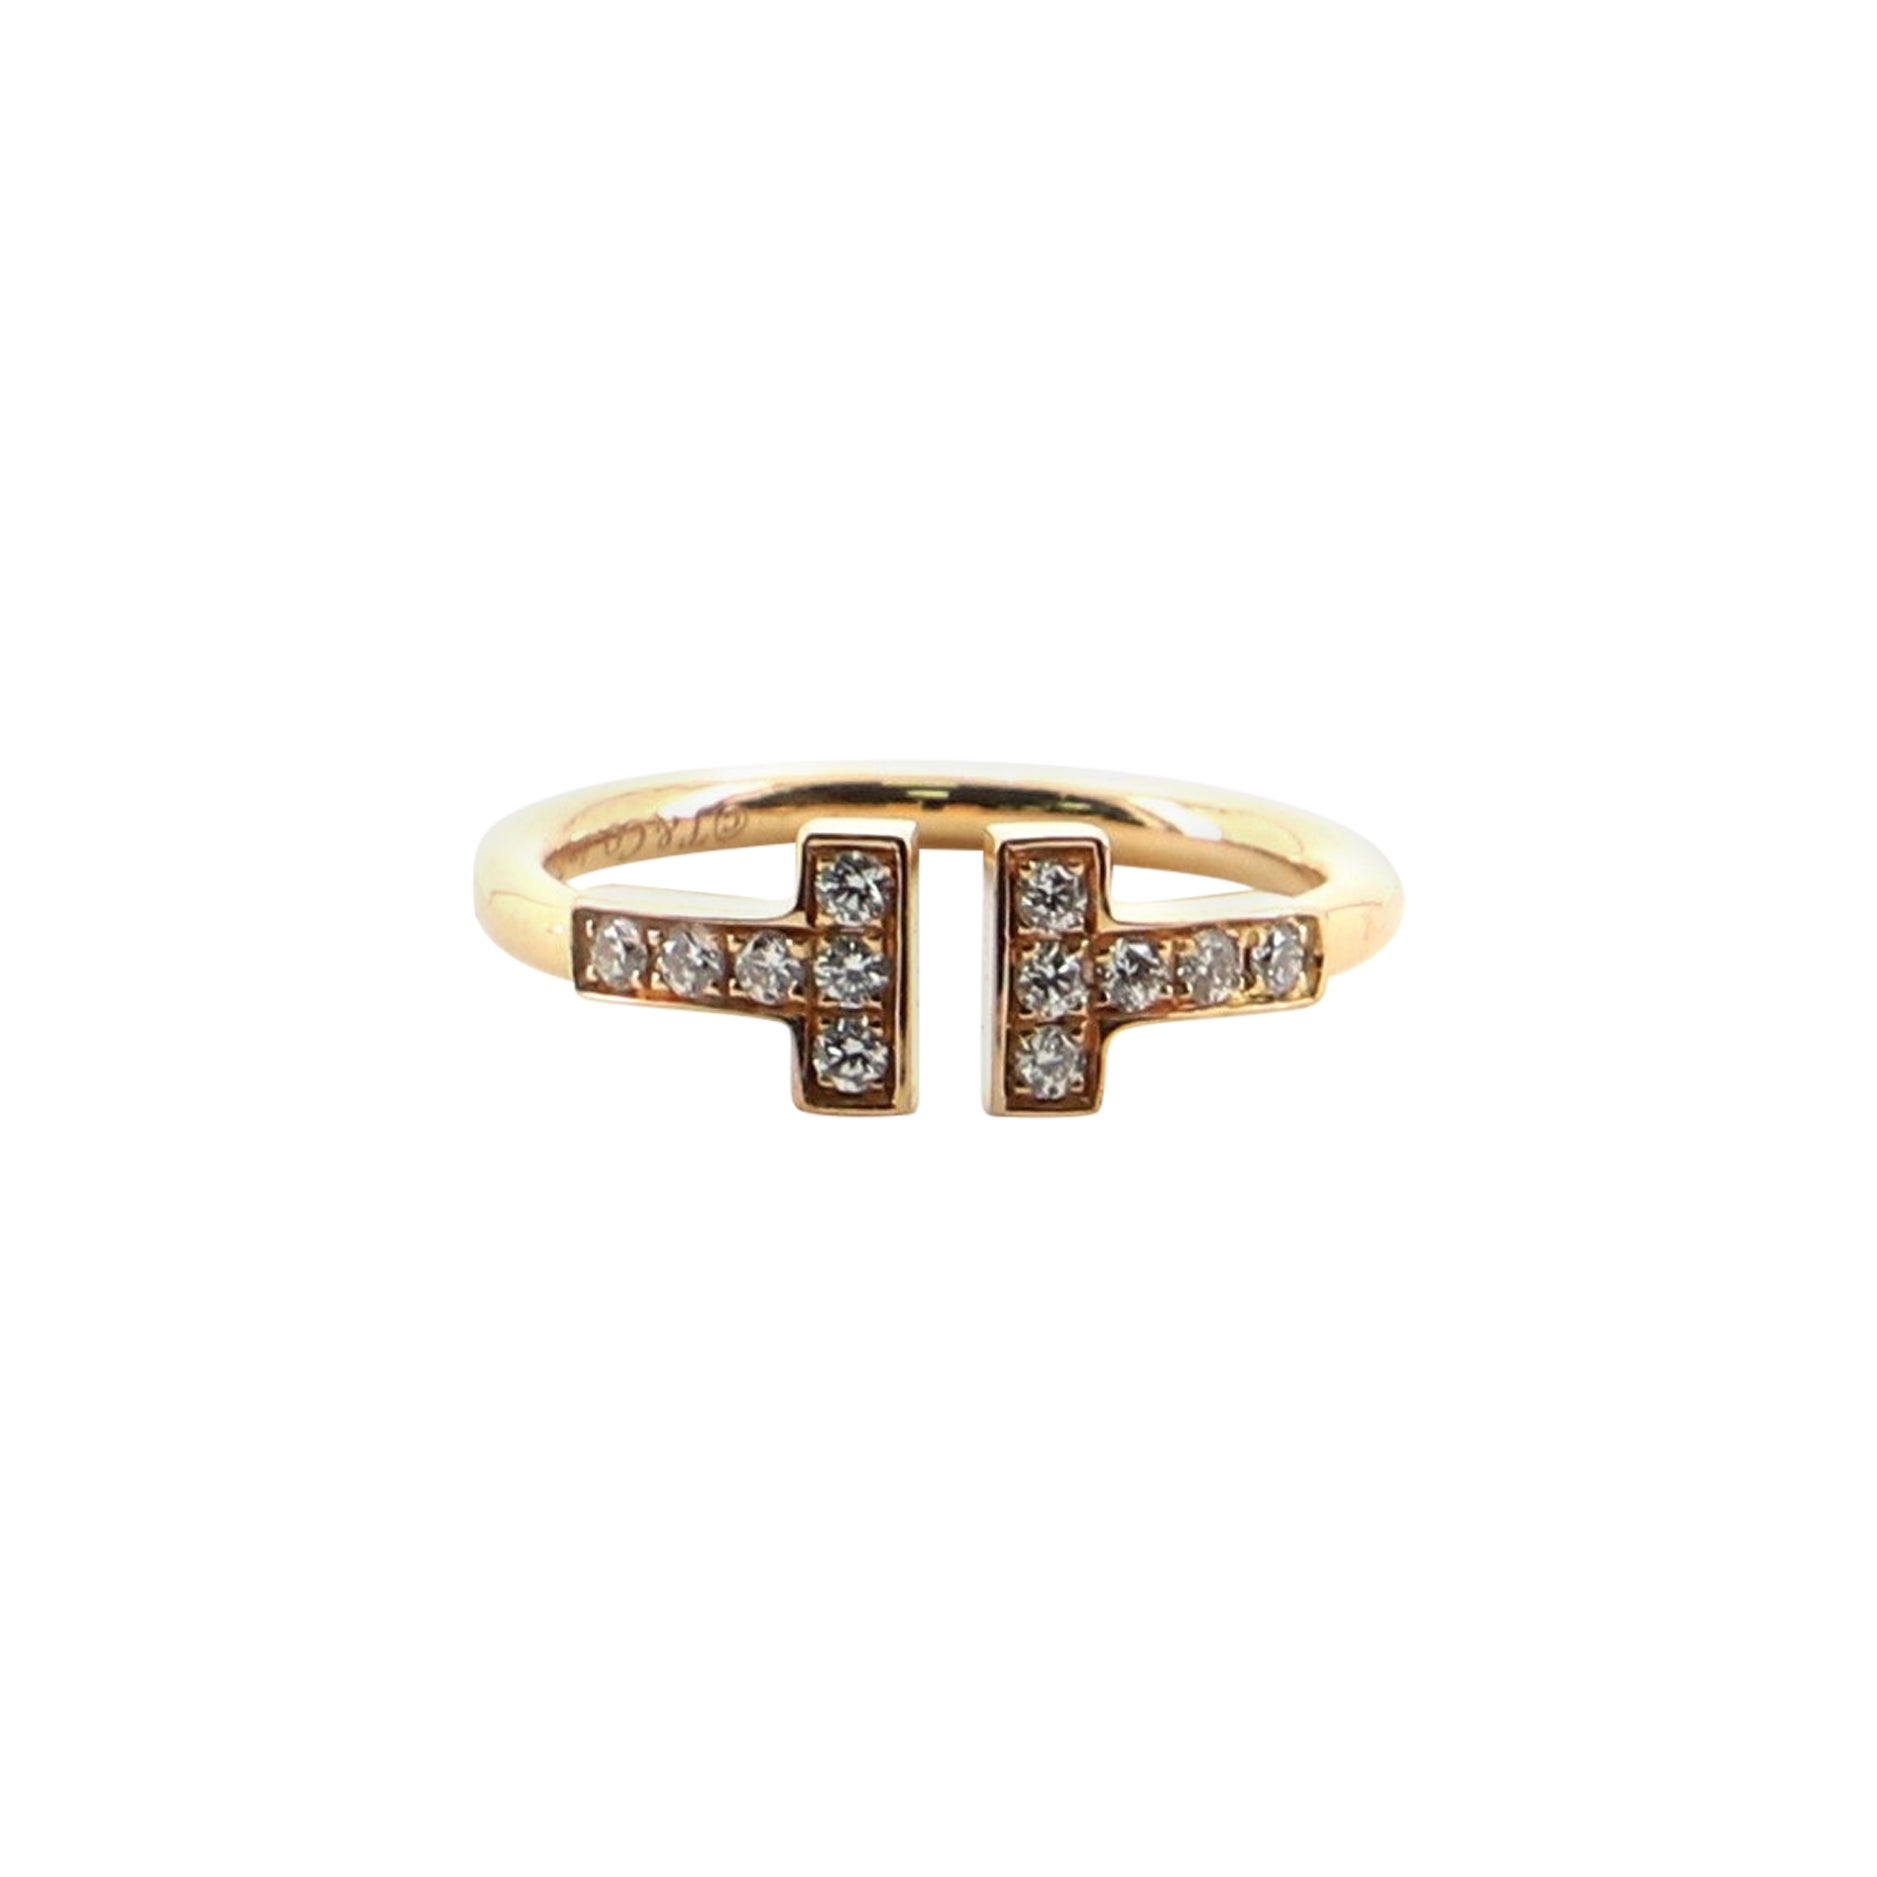 Tiffany & Co. T Wire Ring 18 Karat Rose Gold with Diamonds 4.5 - 48